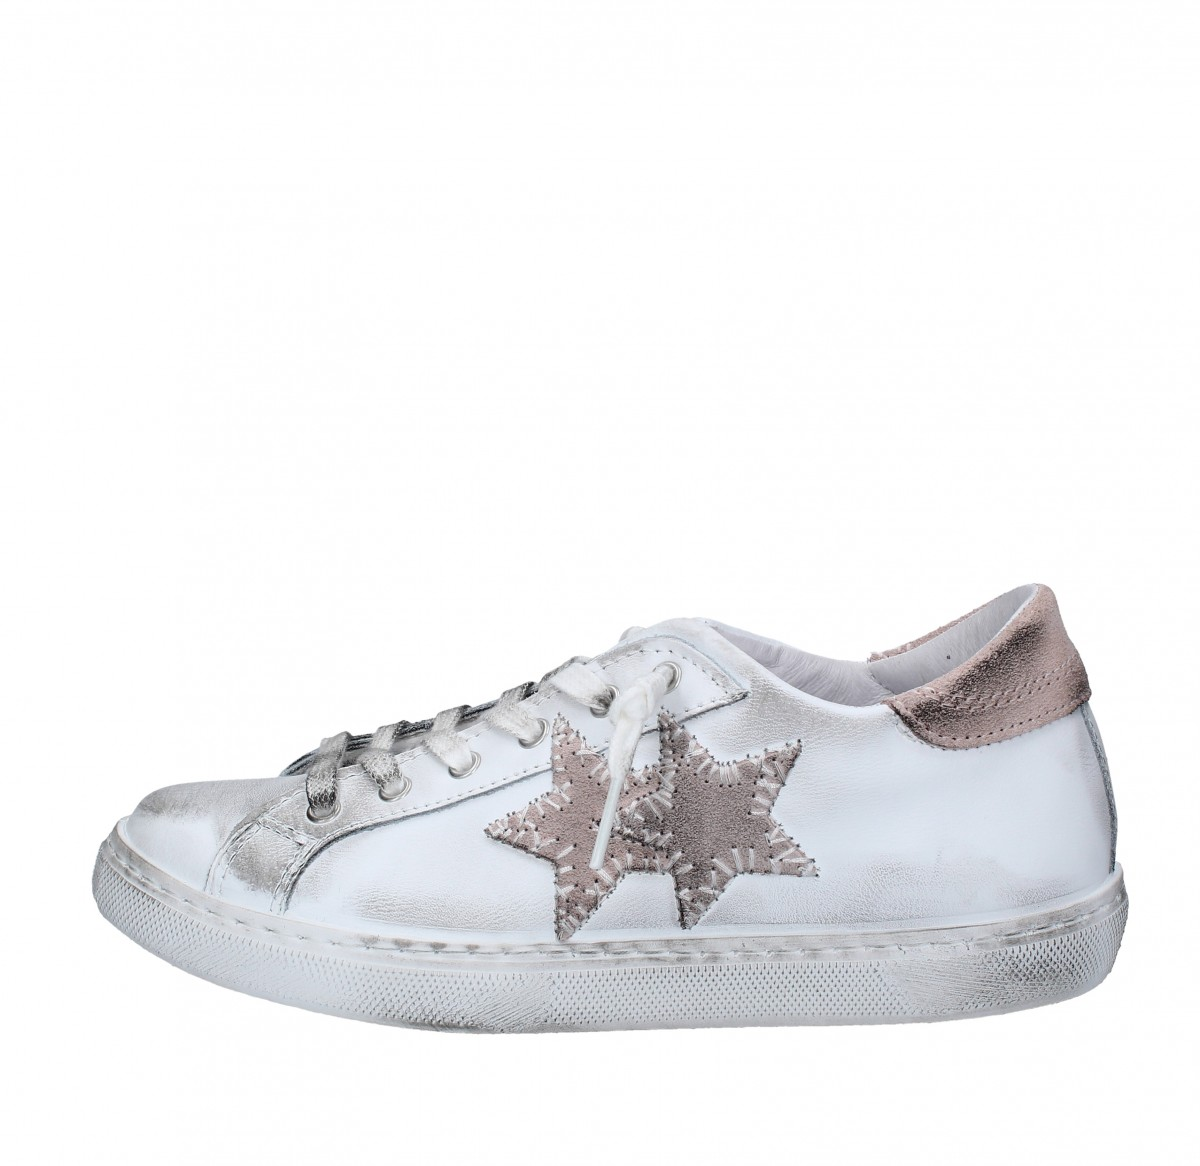 Donna Sneakers Sneakers Donna Numero 39 2star 2star 39 2star Numero 39 Numero Sneakers TYwFwqA5